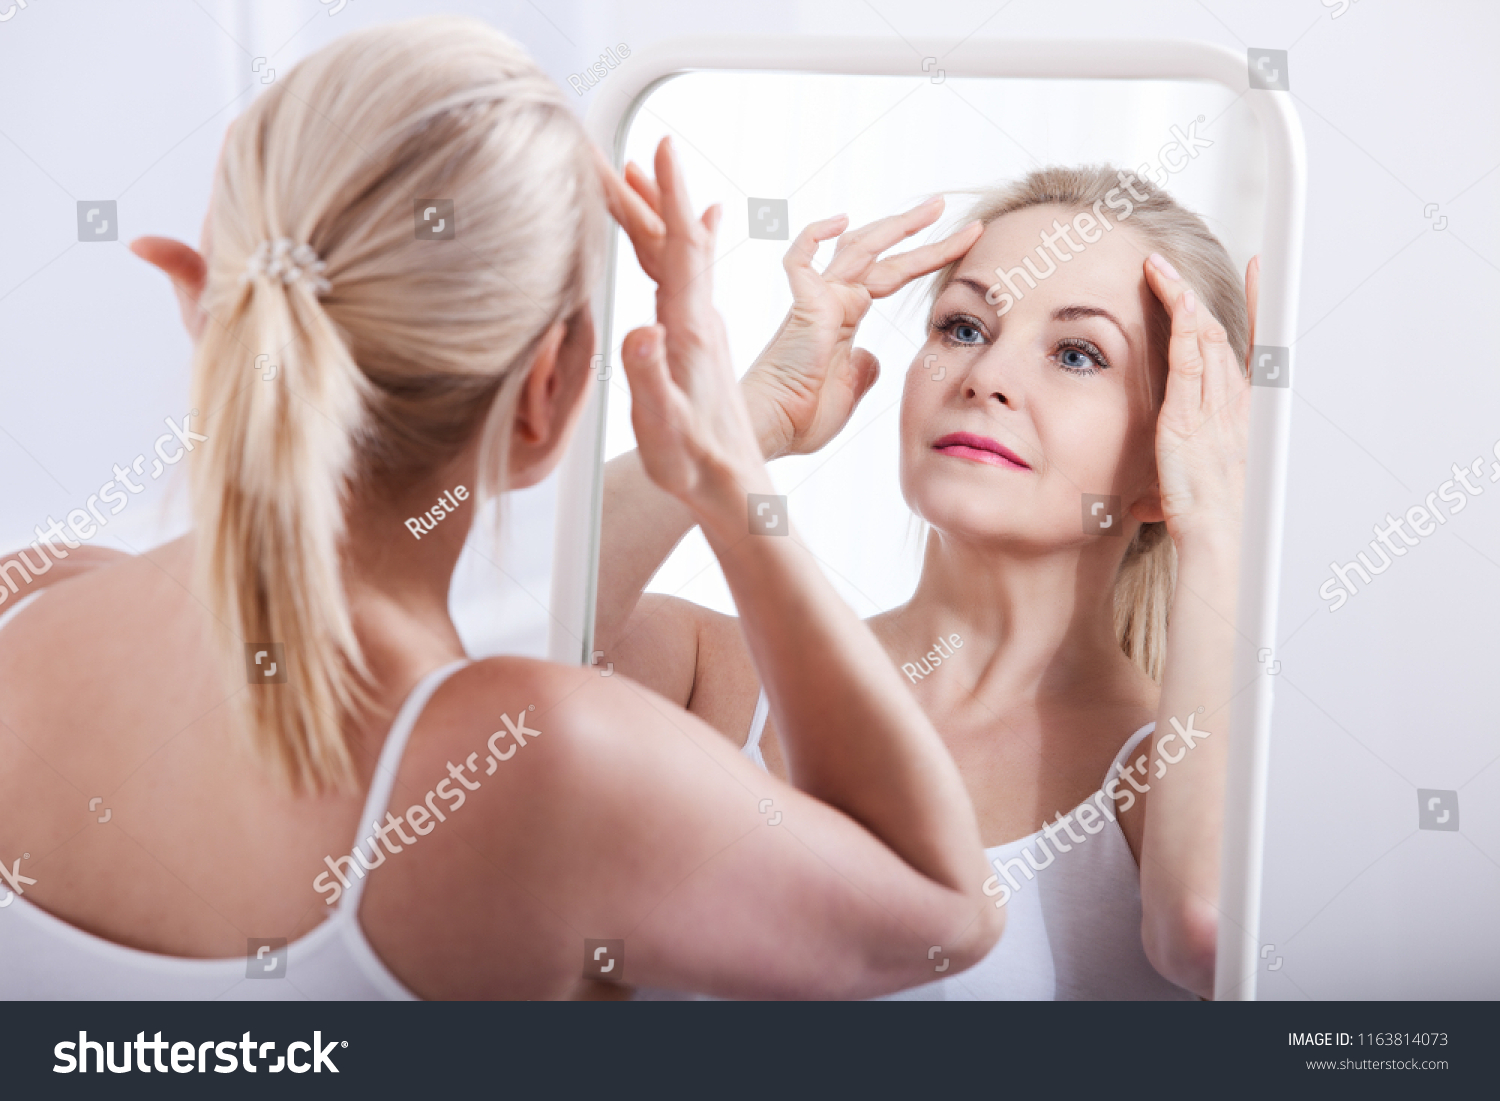 Erotic pictures of women looking in mirrors will